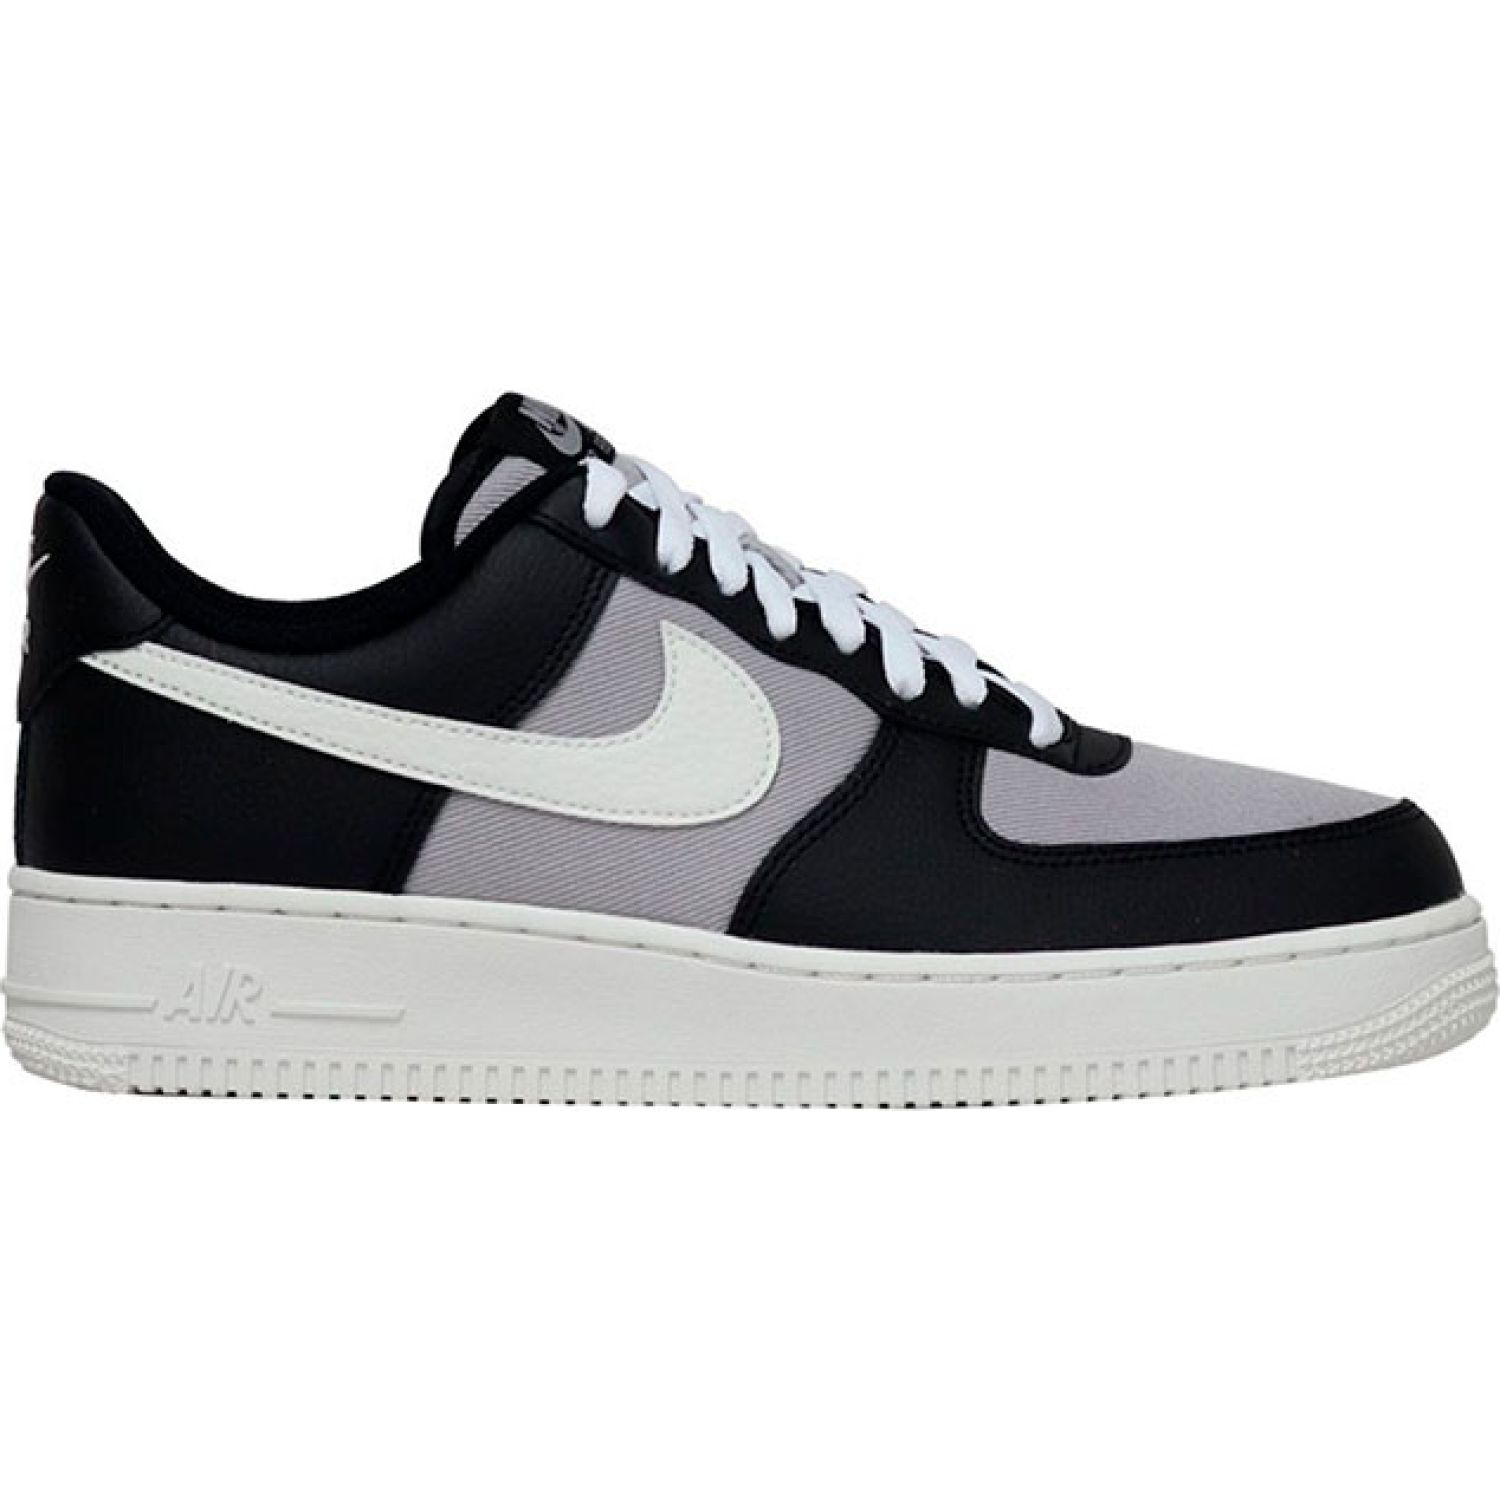 Nike air force 1 07 1fa19 NEGRO / GRIS Walking